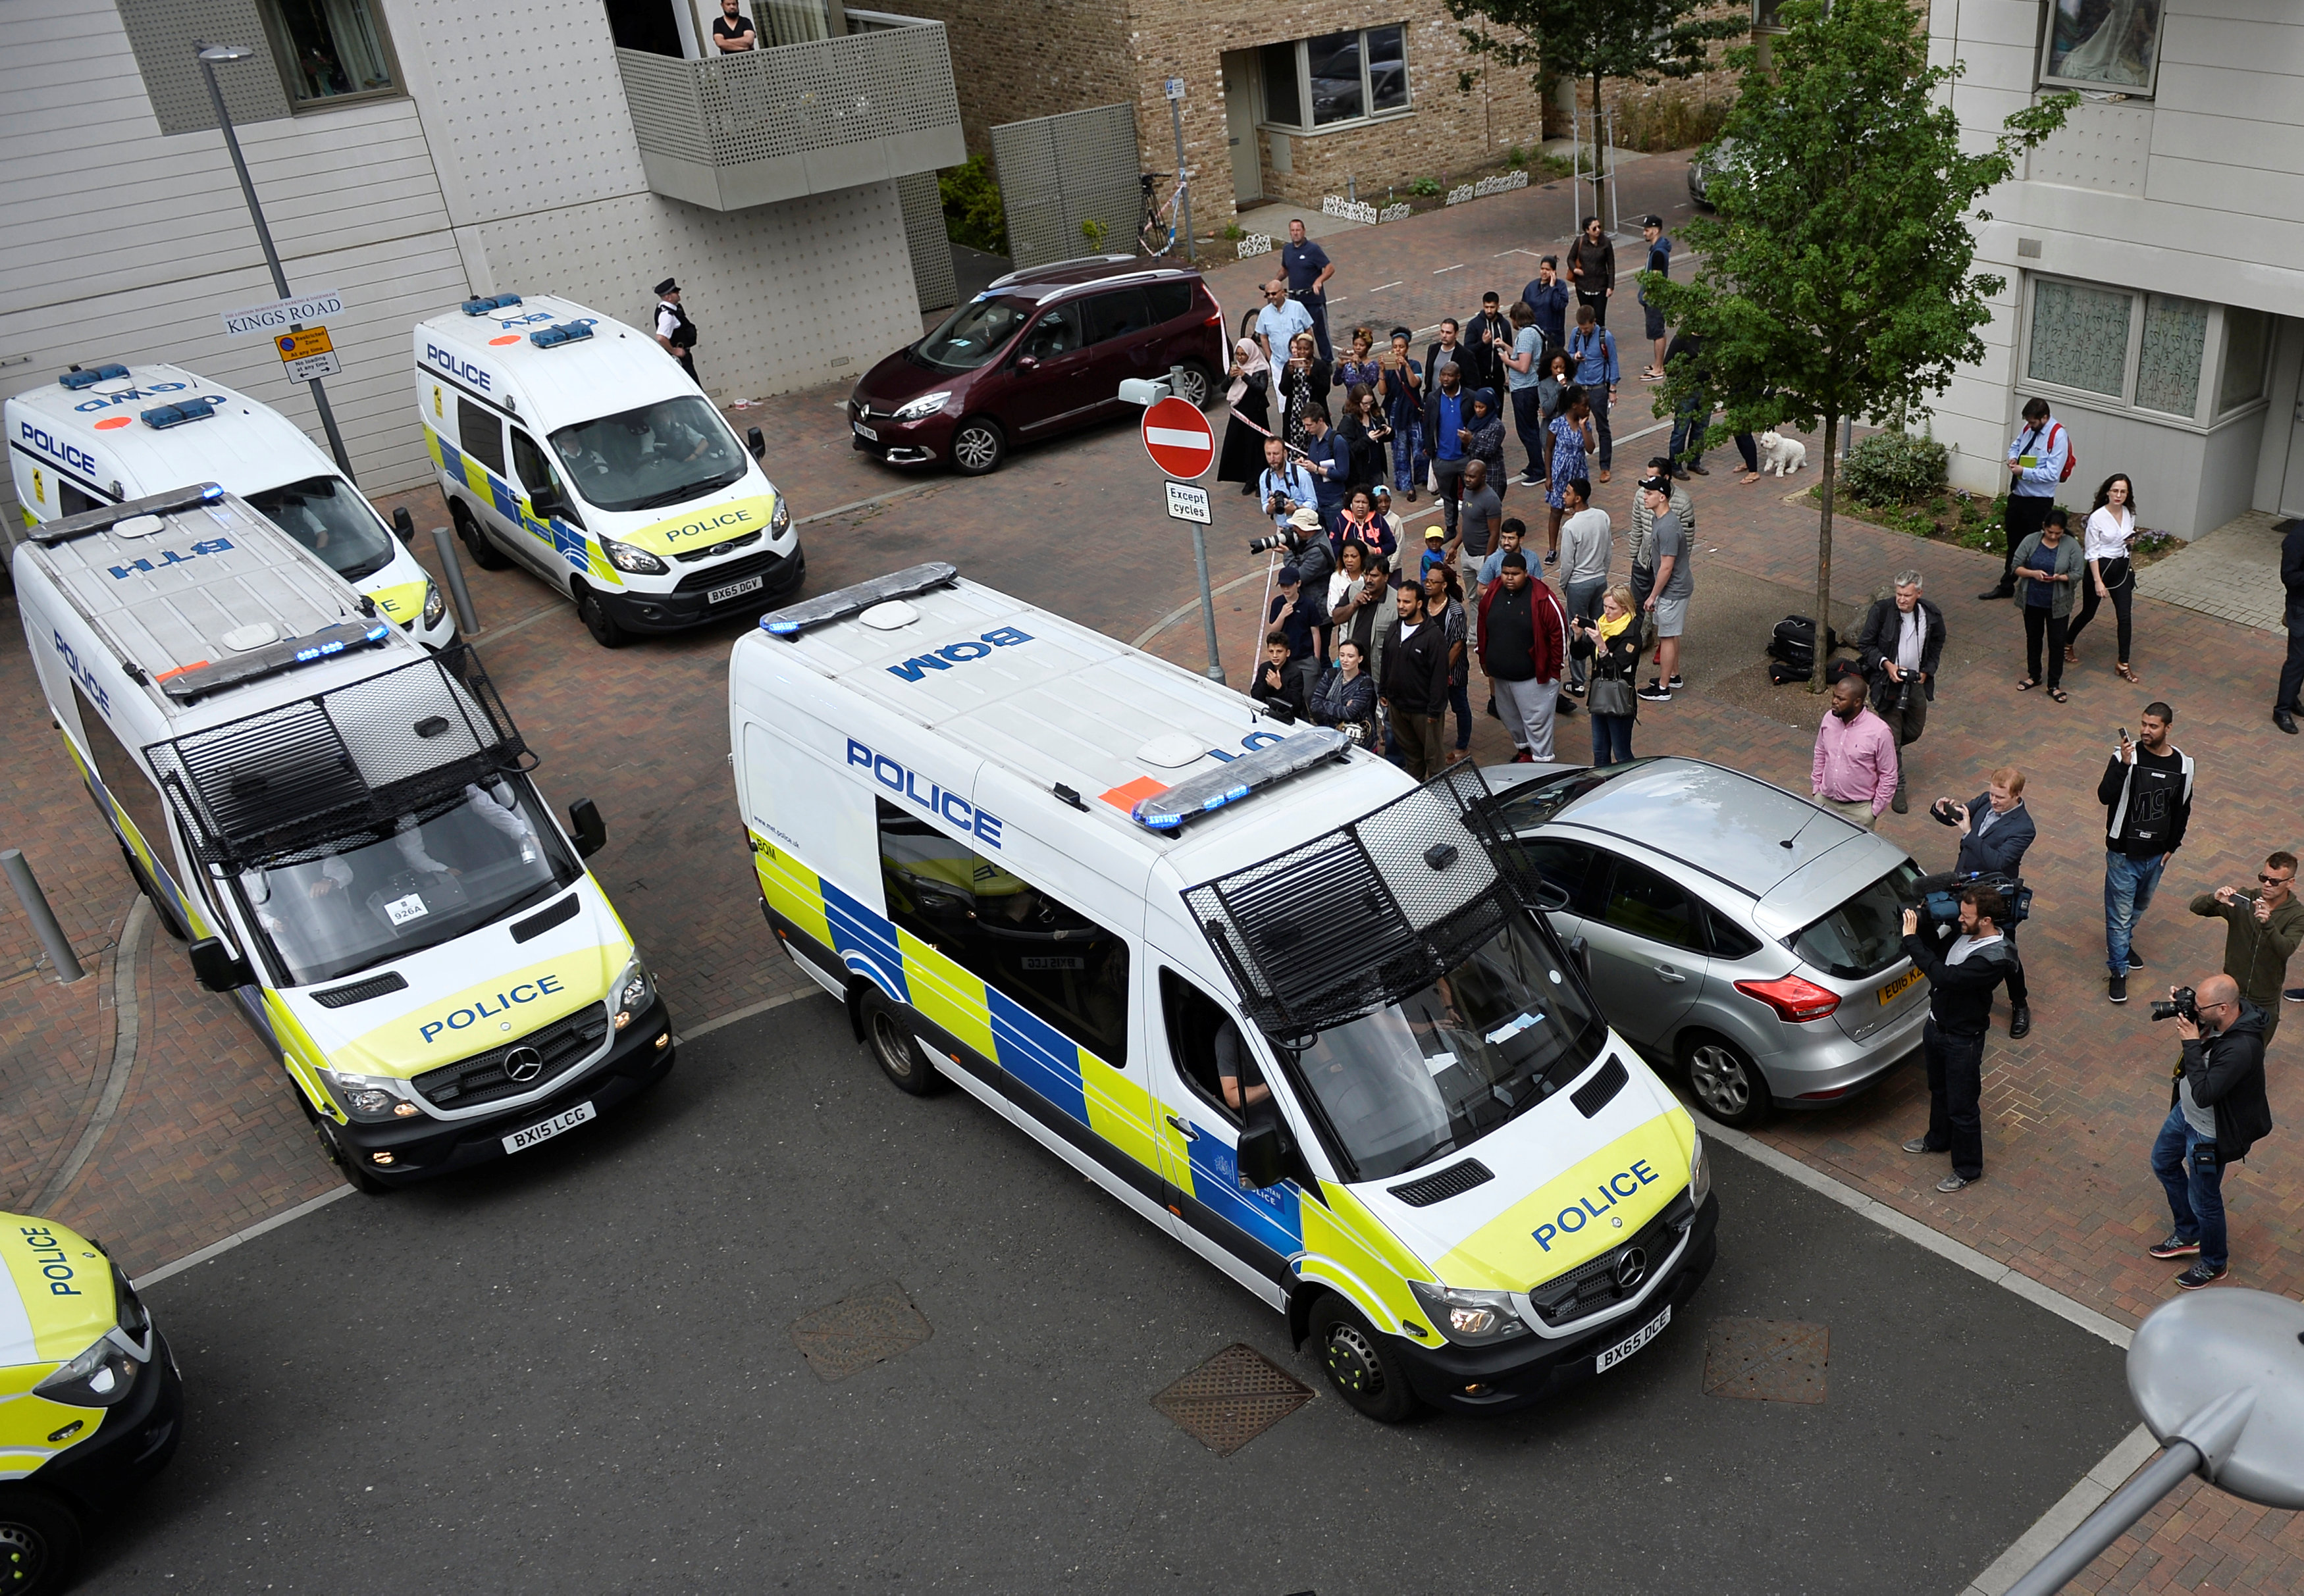 Police vans leave carrying a number of women who were detained after a block of flats was raided in Barking, east London,